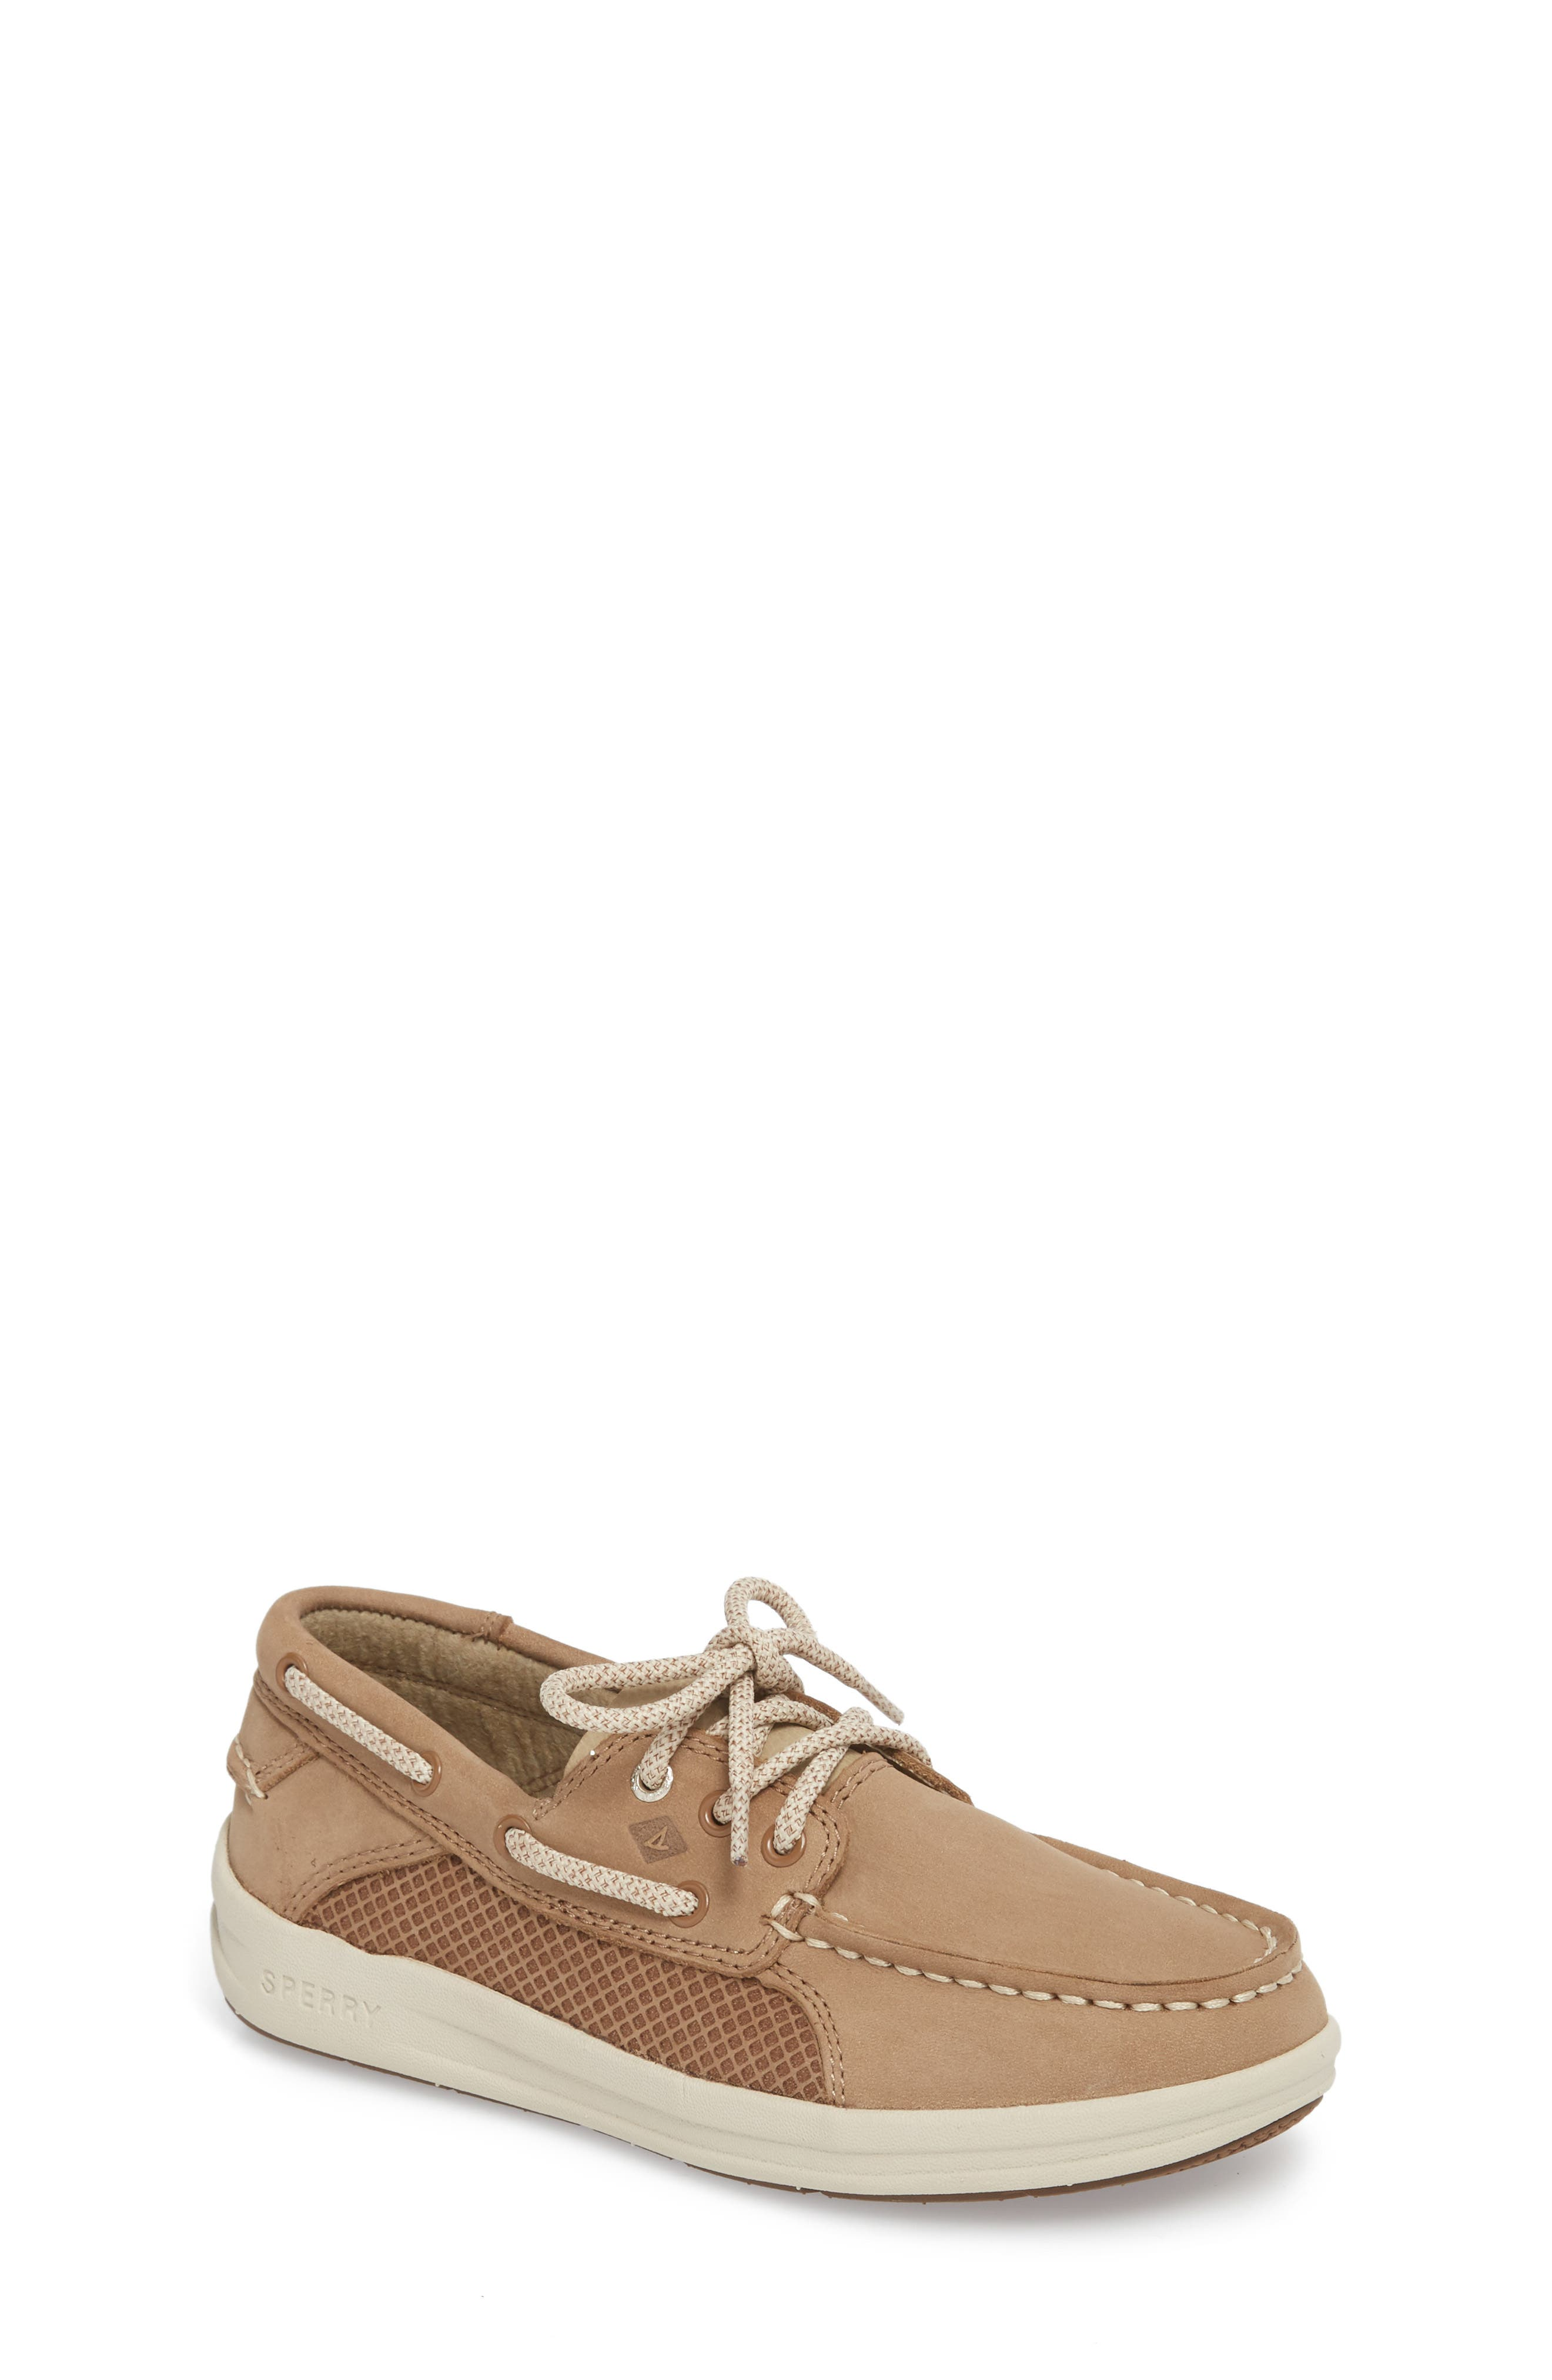 Sperry Gamefish Boat Shoe,                             Main thumbnail 1, color,                             270